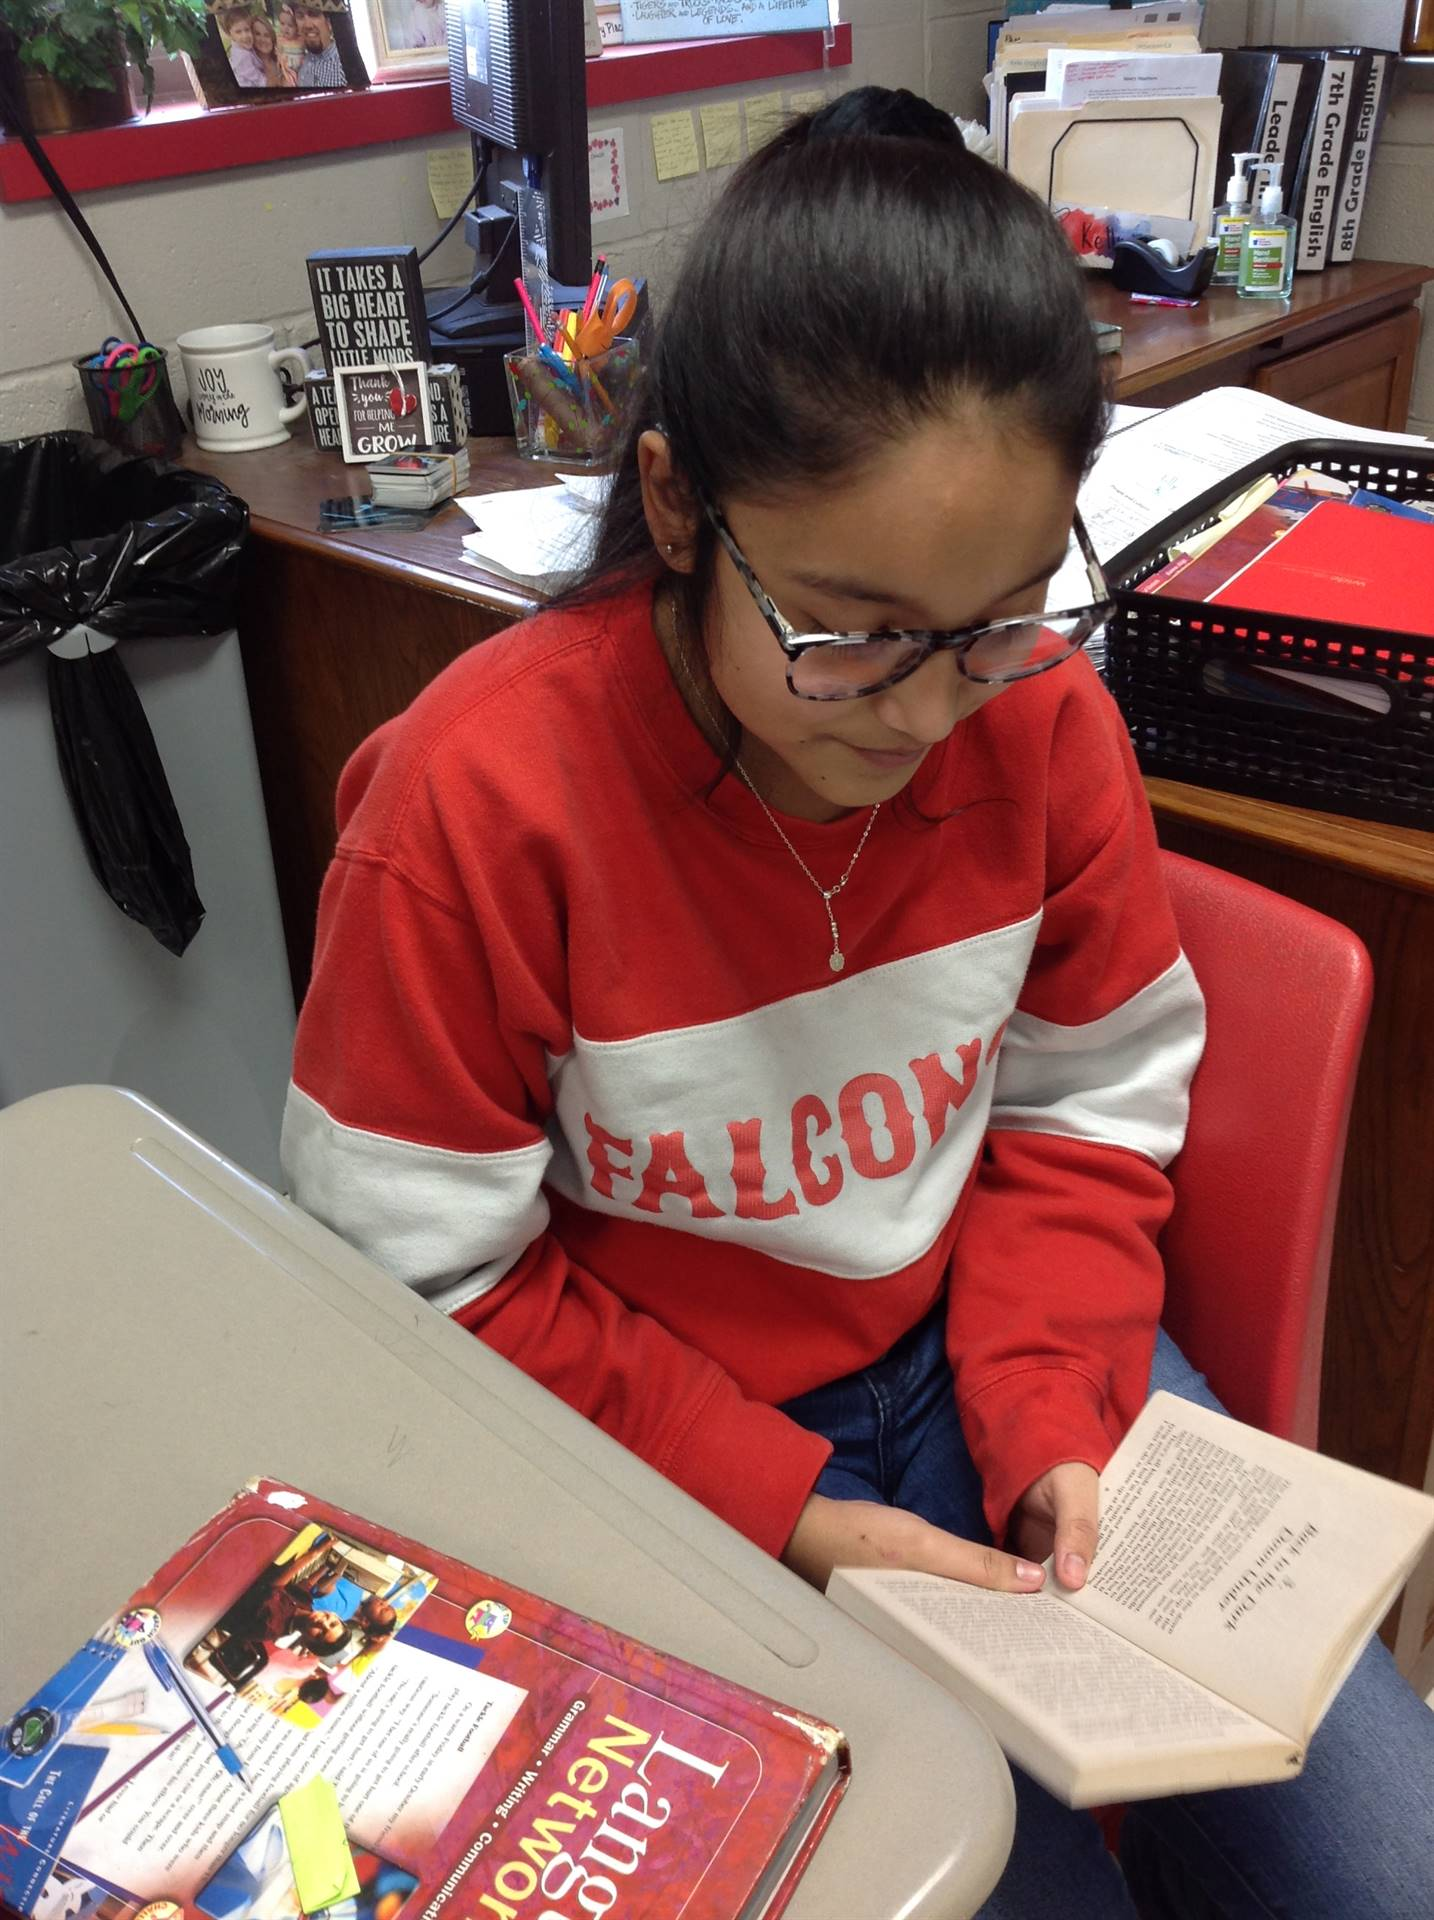 This student was caught reading.